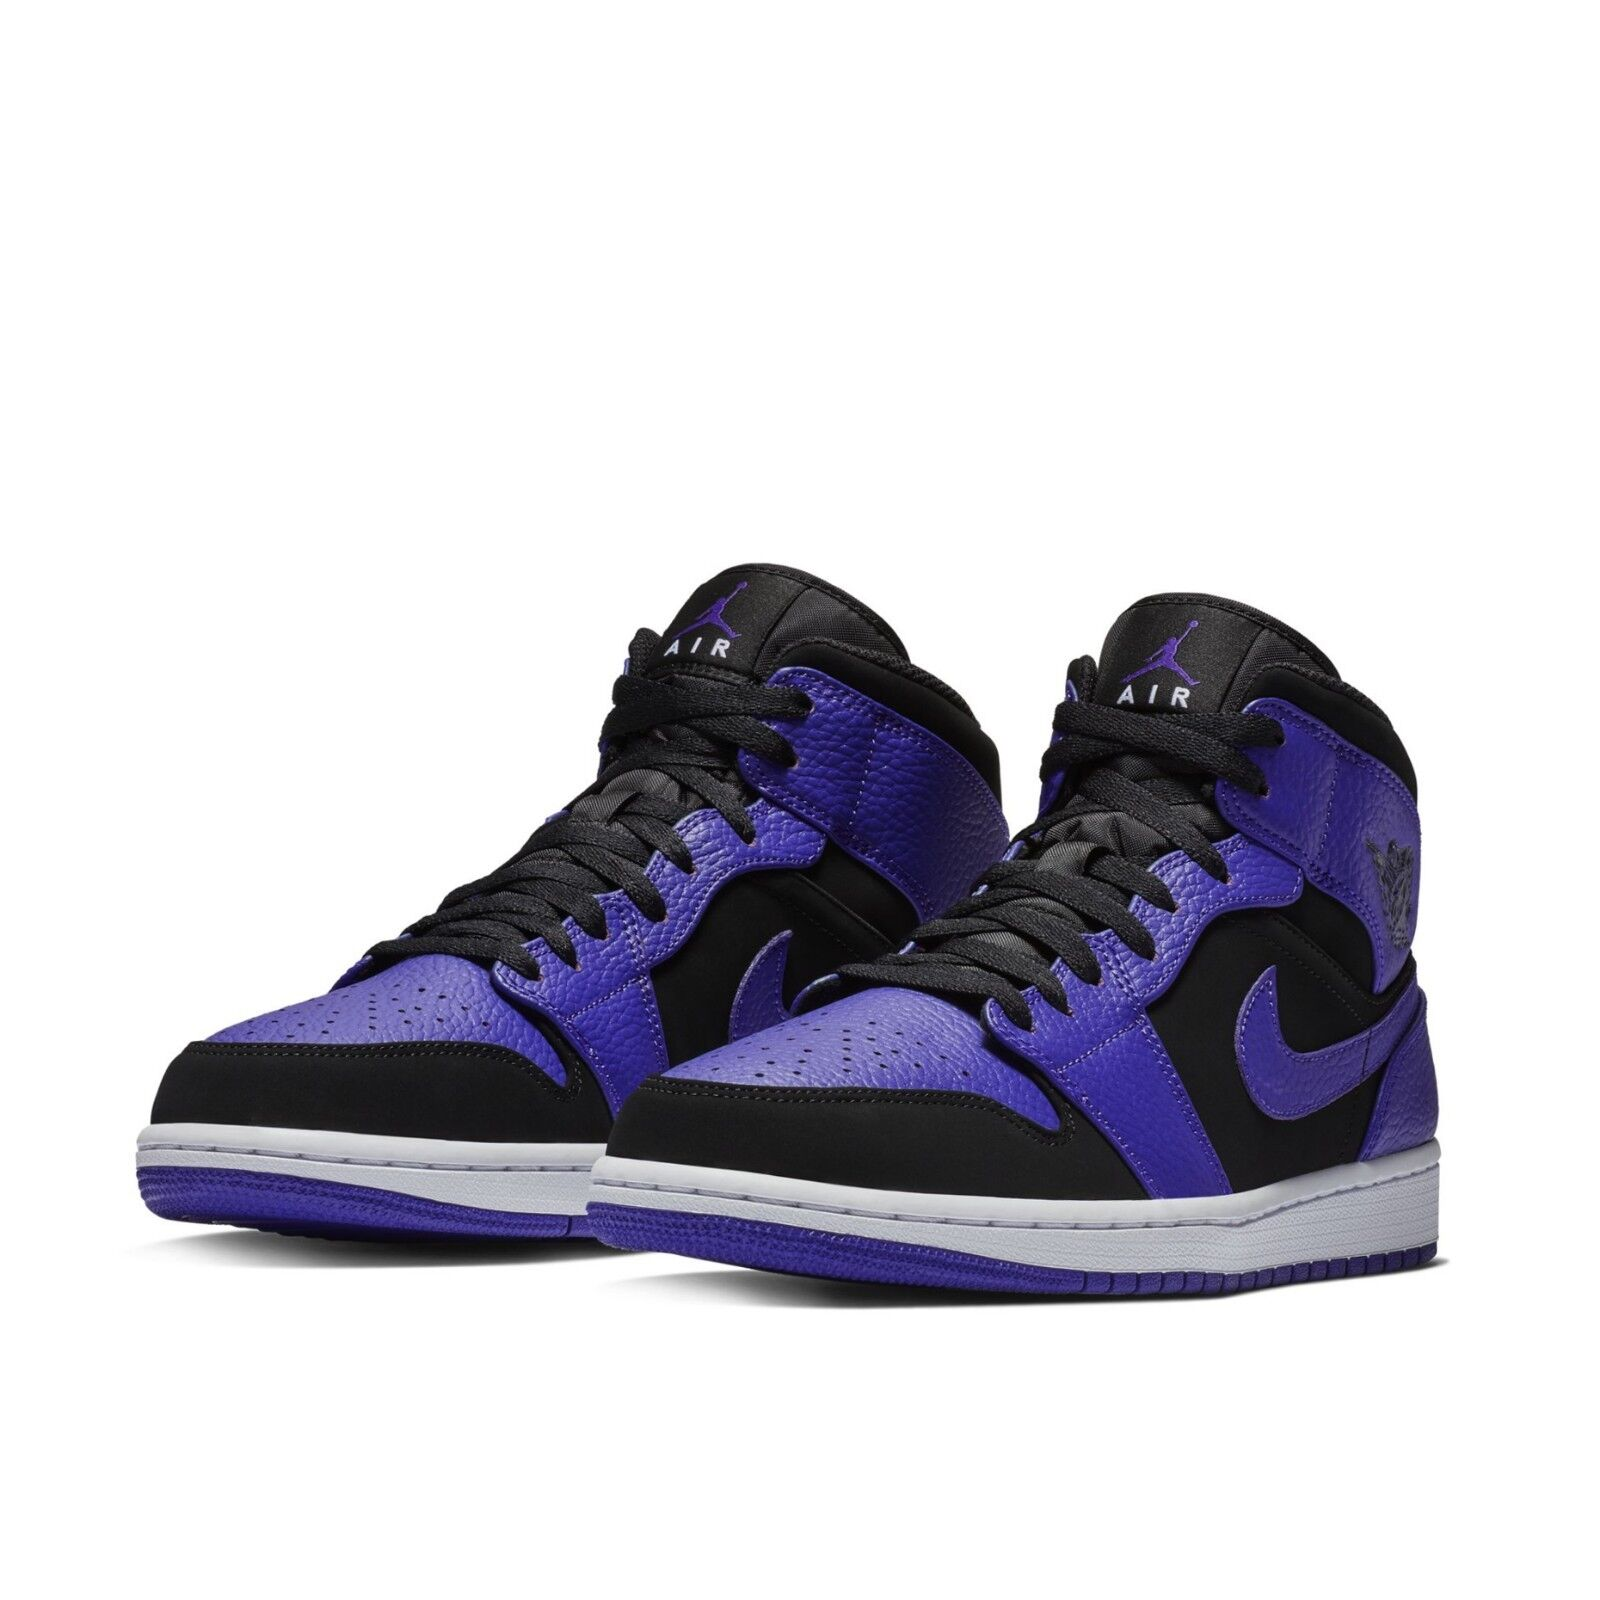 sports shoes 42360 7f89d Details about Nike Mens Air Jordan 1 Mid Black Concord Purple Shoes  Sneakers AJ1 554724-051